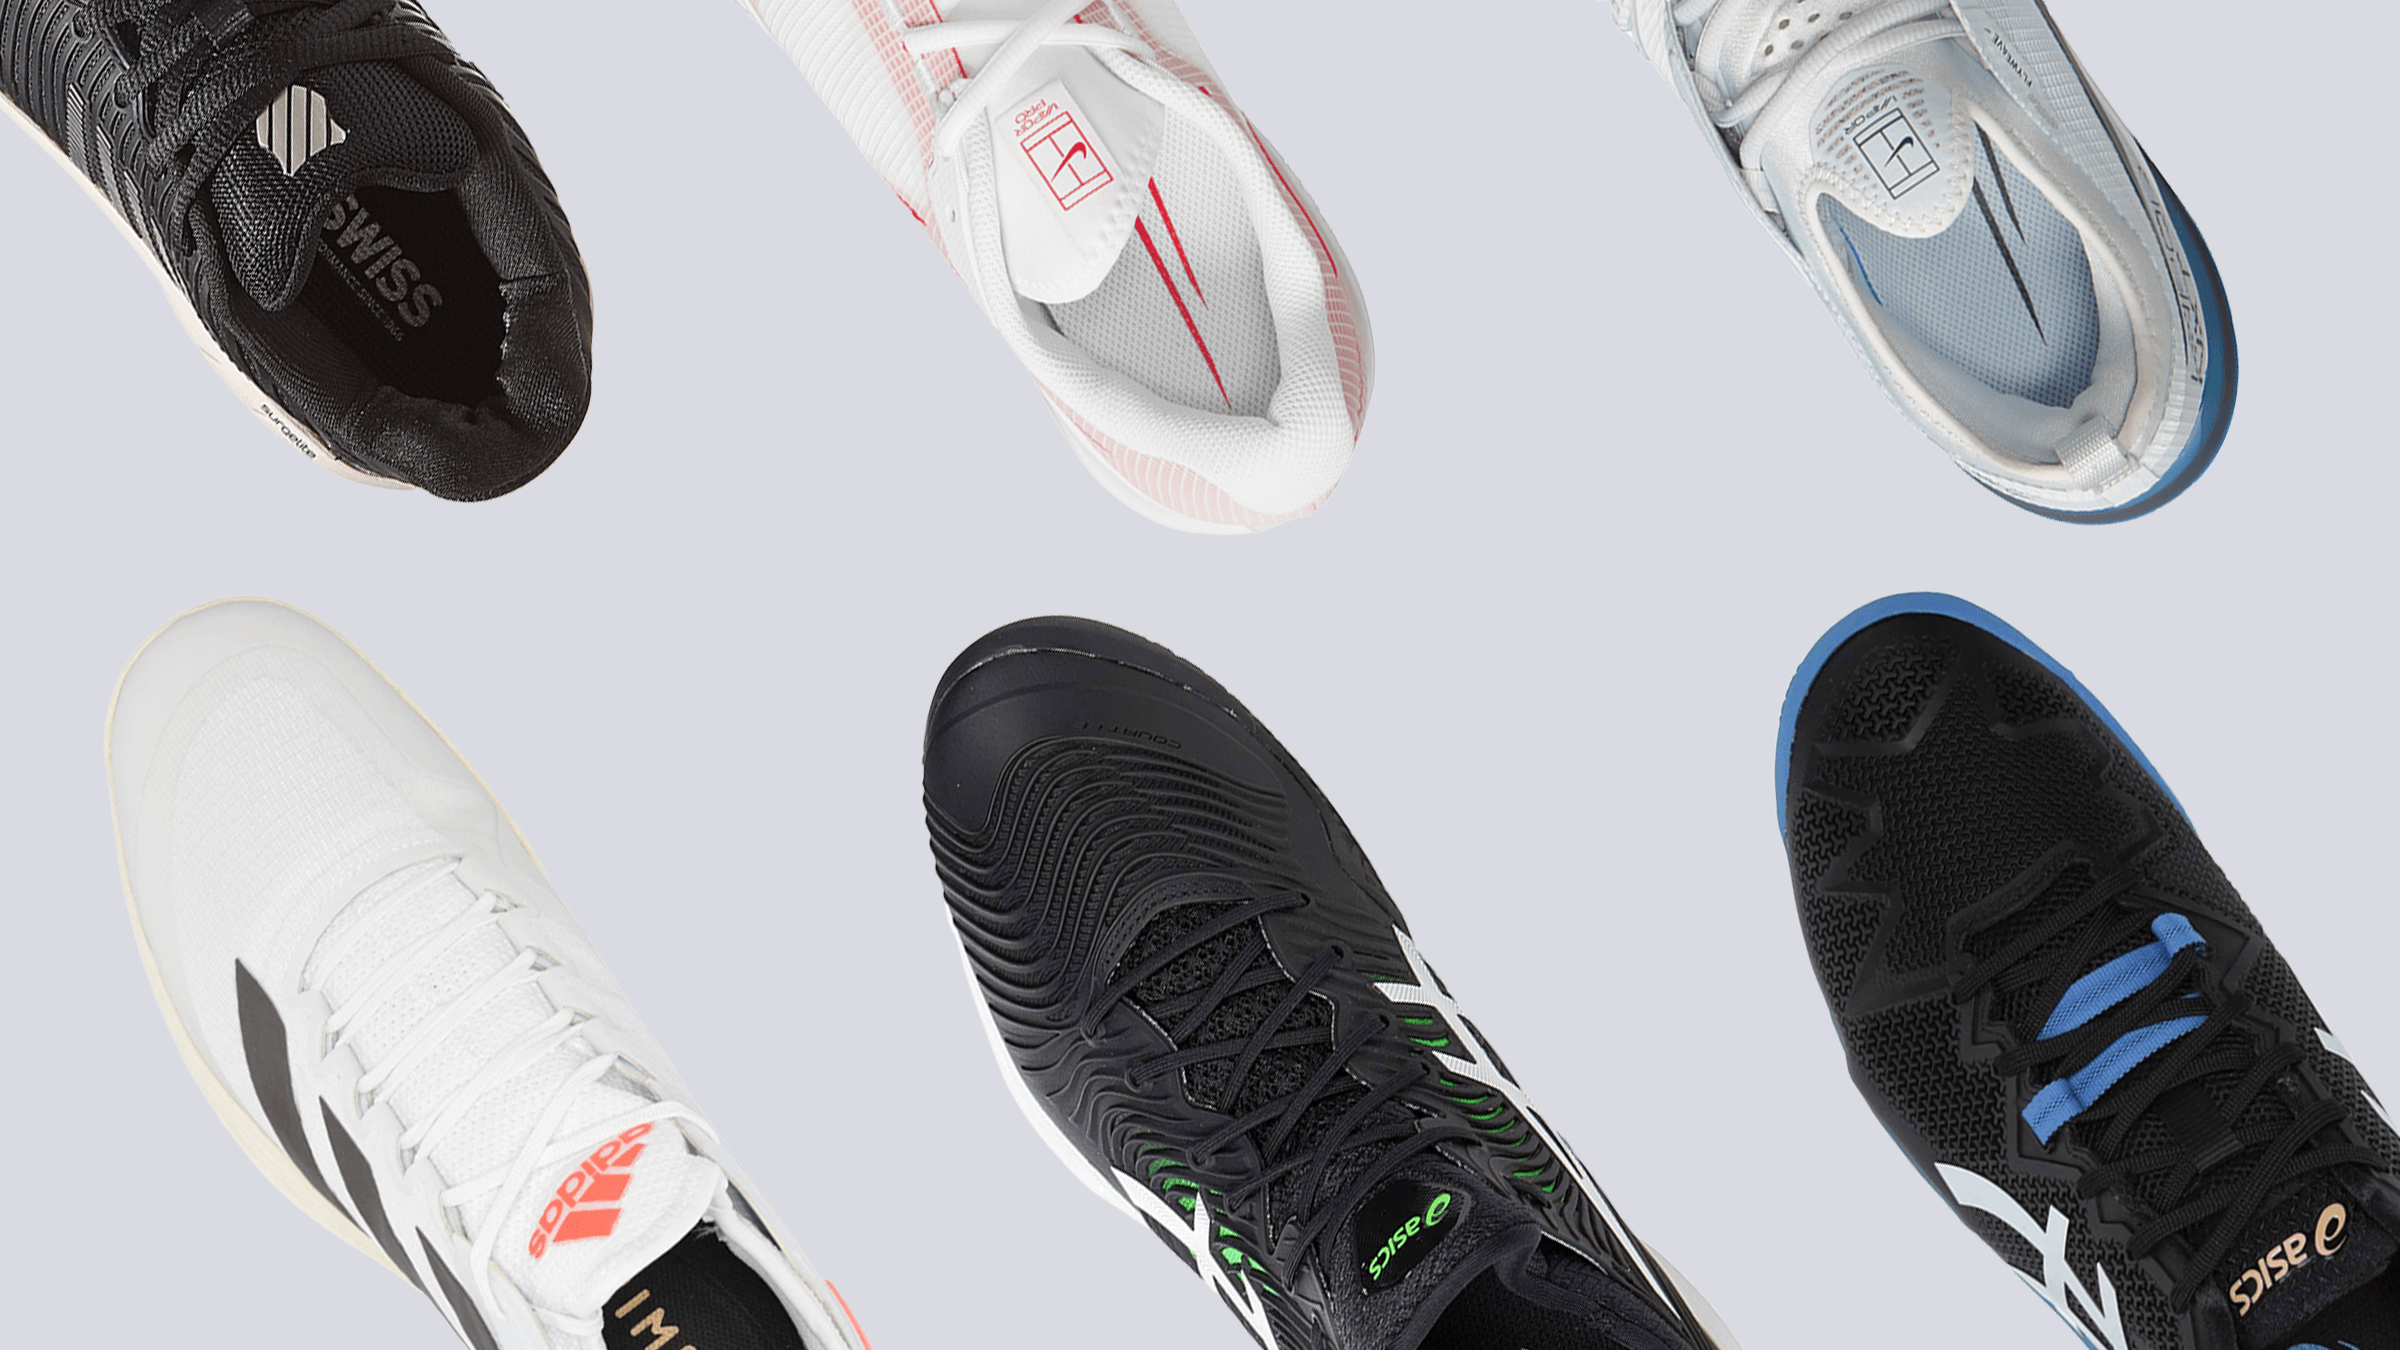 10 Best Tennis Shoes in 2021